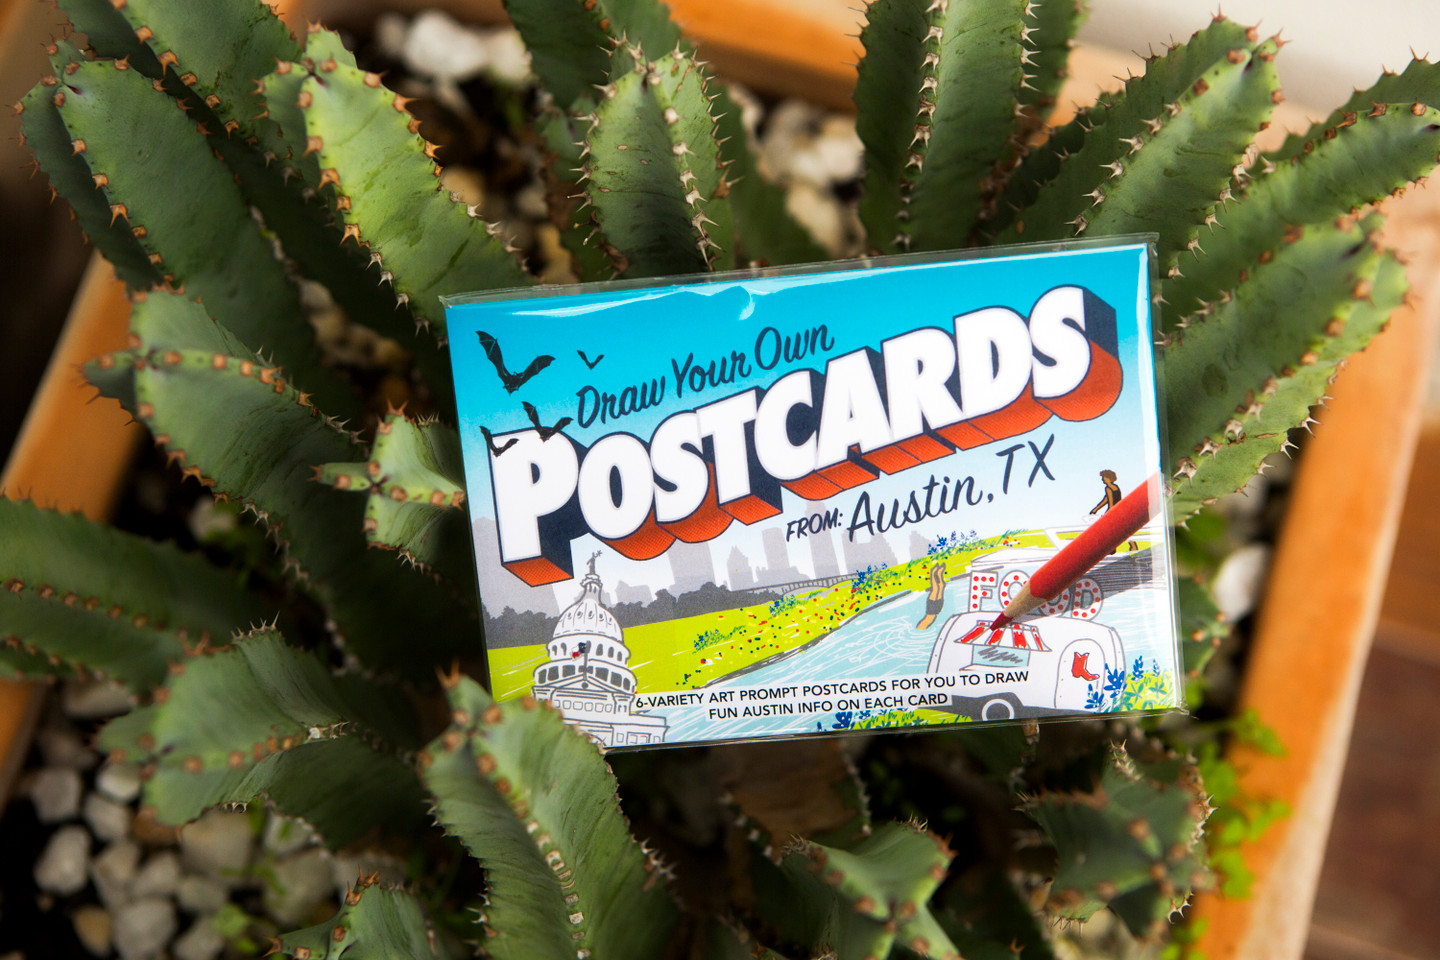 Austin POSTcards   Draw Your Own (6-Variety)